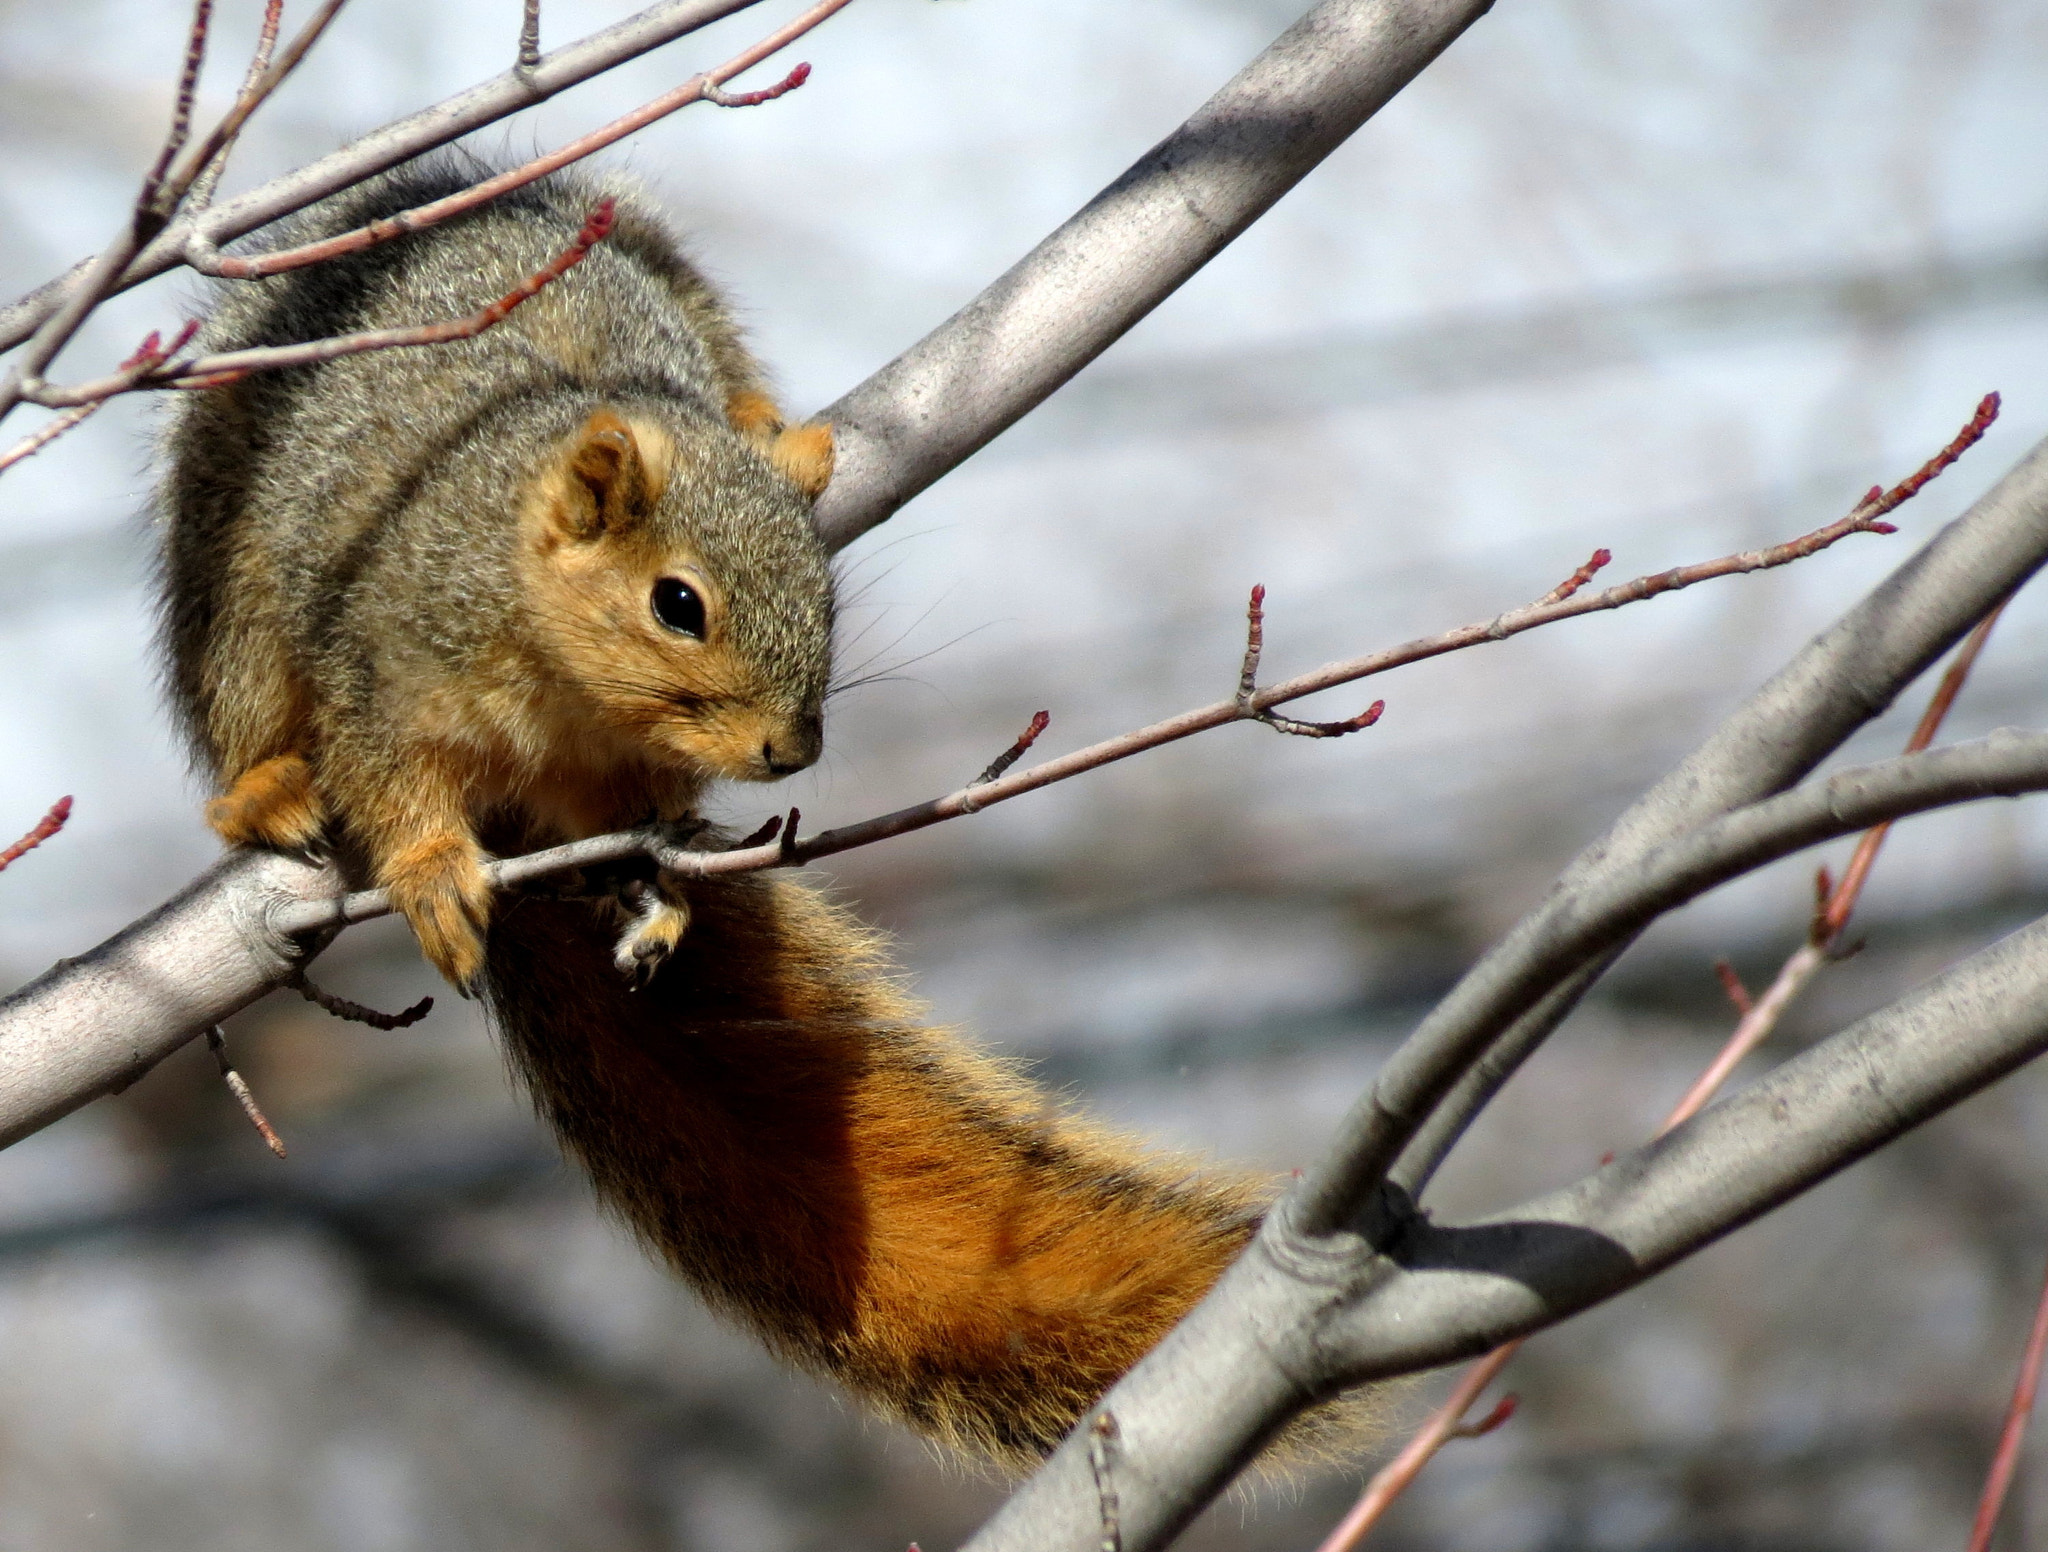 Photograph Squirrel In The Wind by Kevin Fechtelkotter on 500px